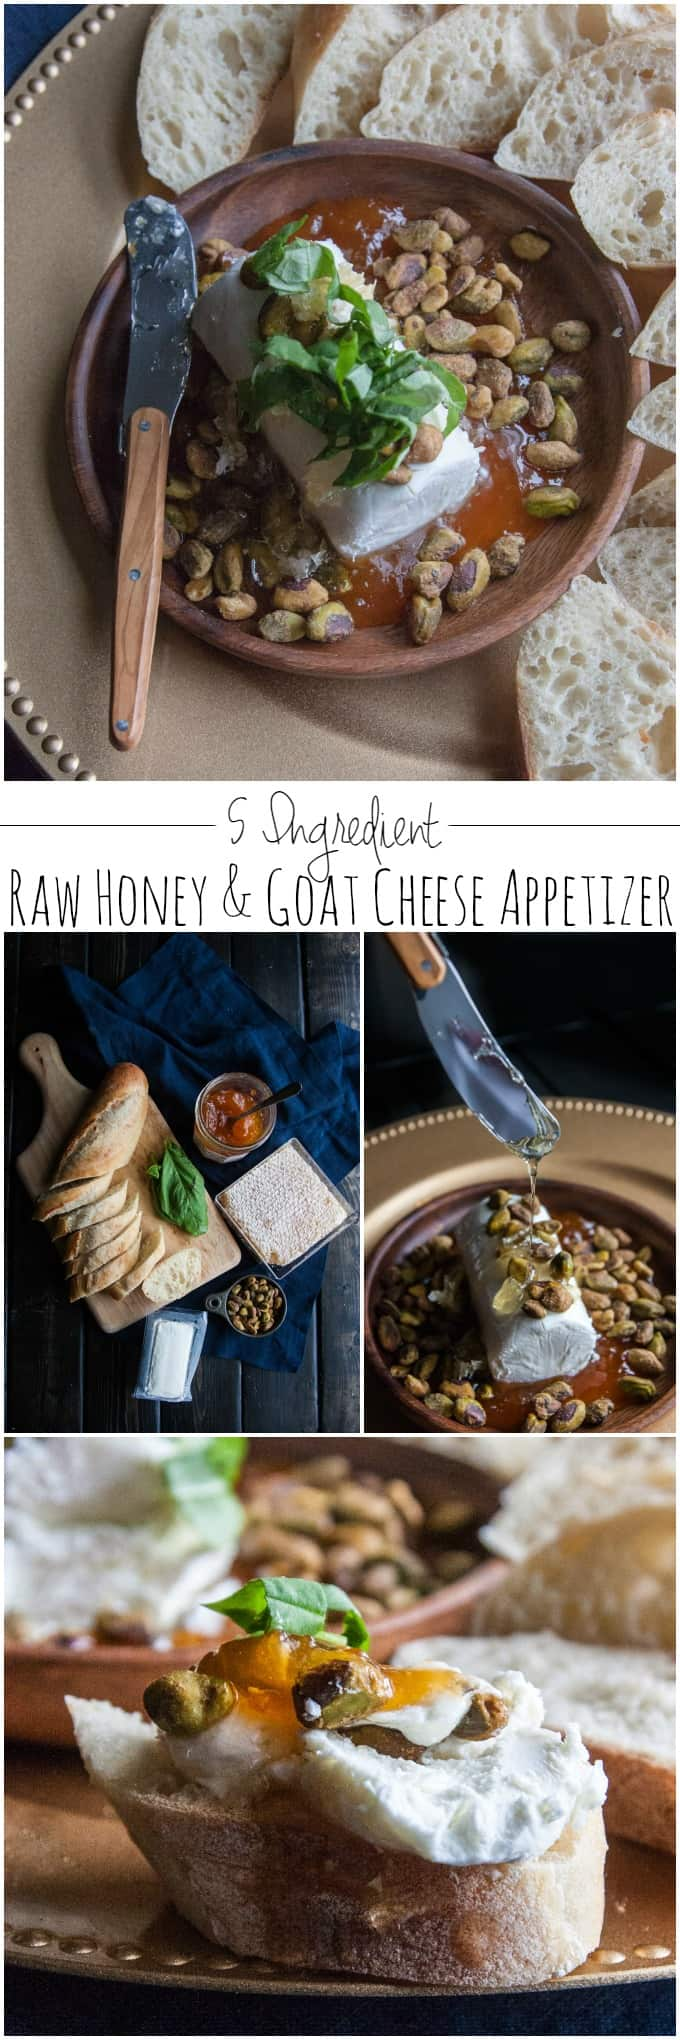 Super easy 5 ingredient raw honey and goat cheese appetizer from @sweetphi